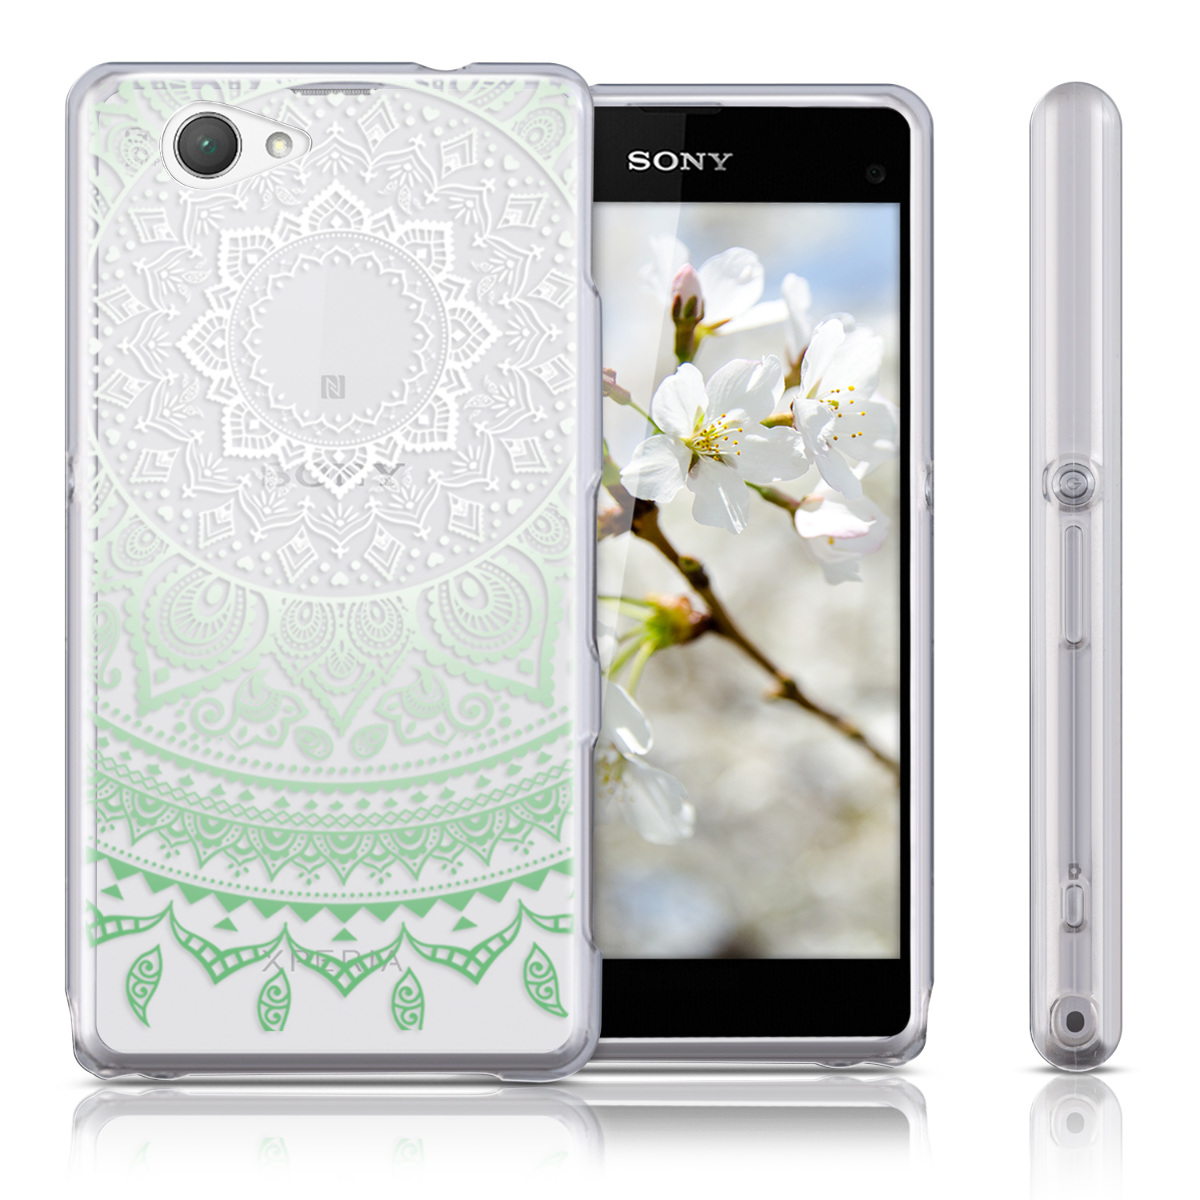 TPU SILICONE CRYSTAL CASE FOR SONY XPERIA Z1 COMPACT SOFT ... | 1200 x 1200 jpeg 288kB